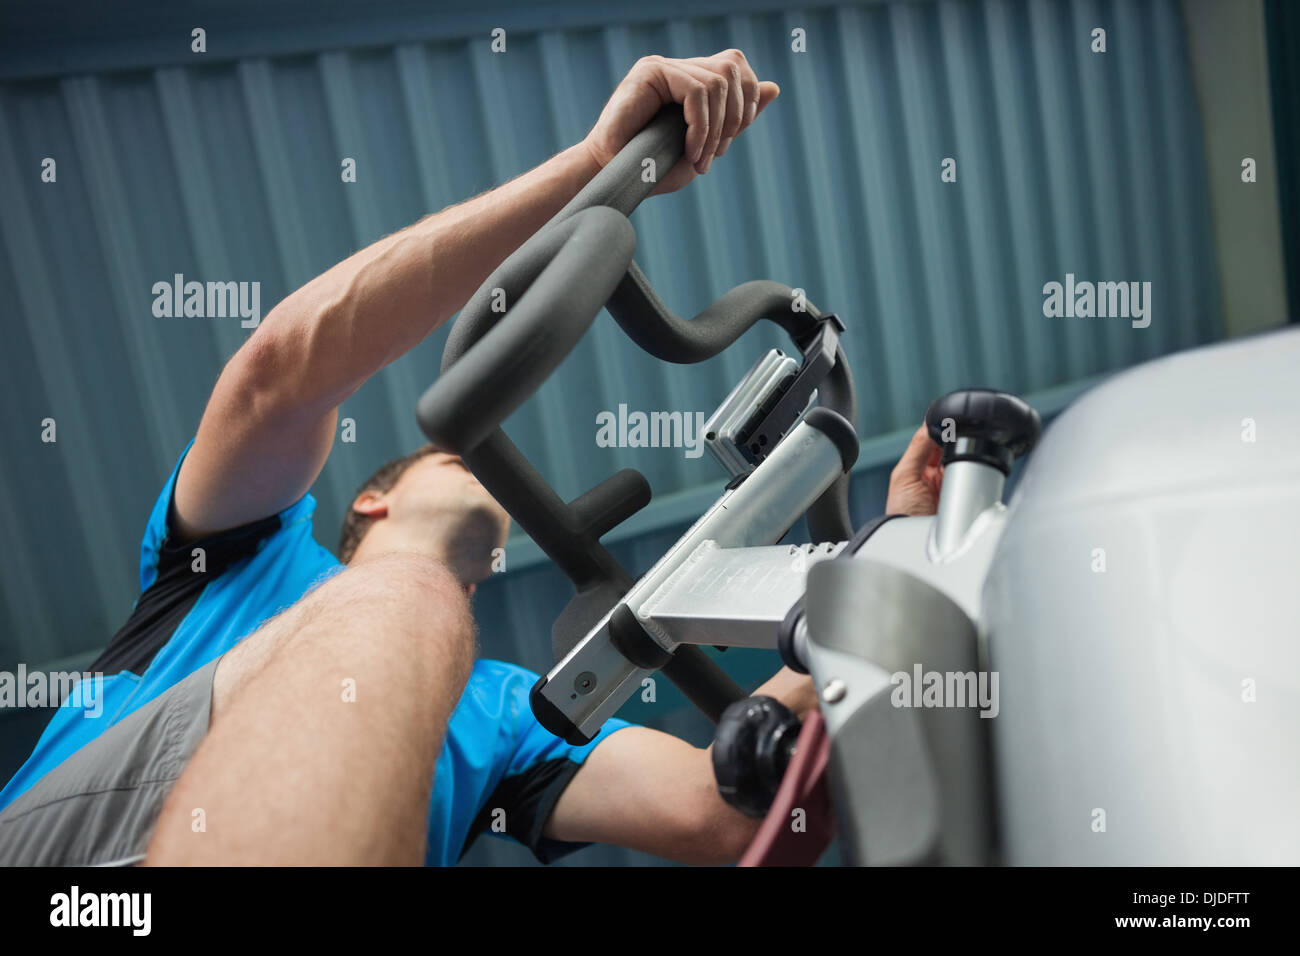 Determined man working out at spinning class in gym - Stock Image